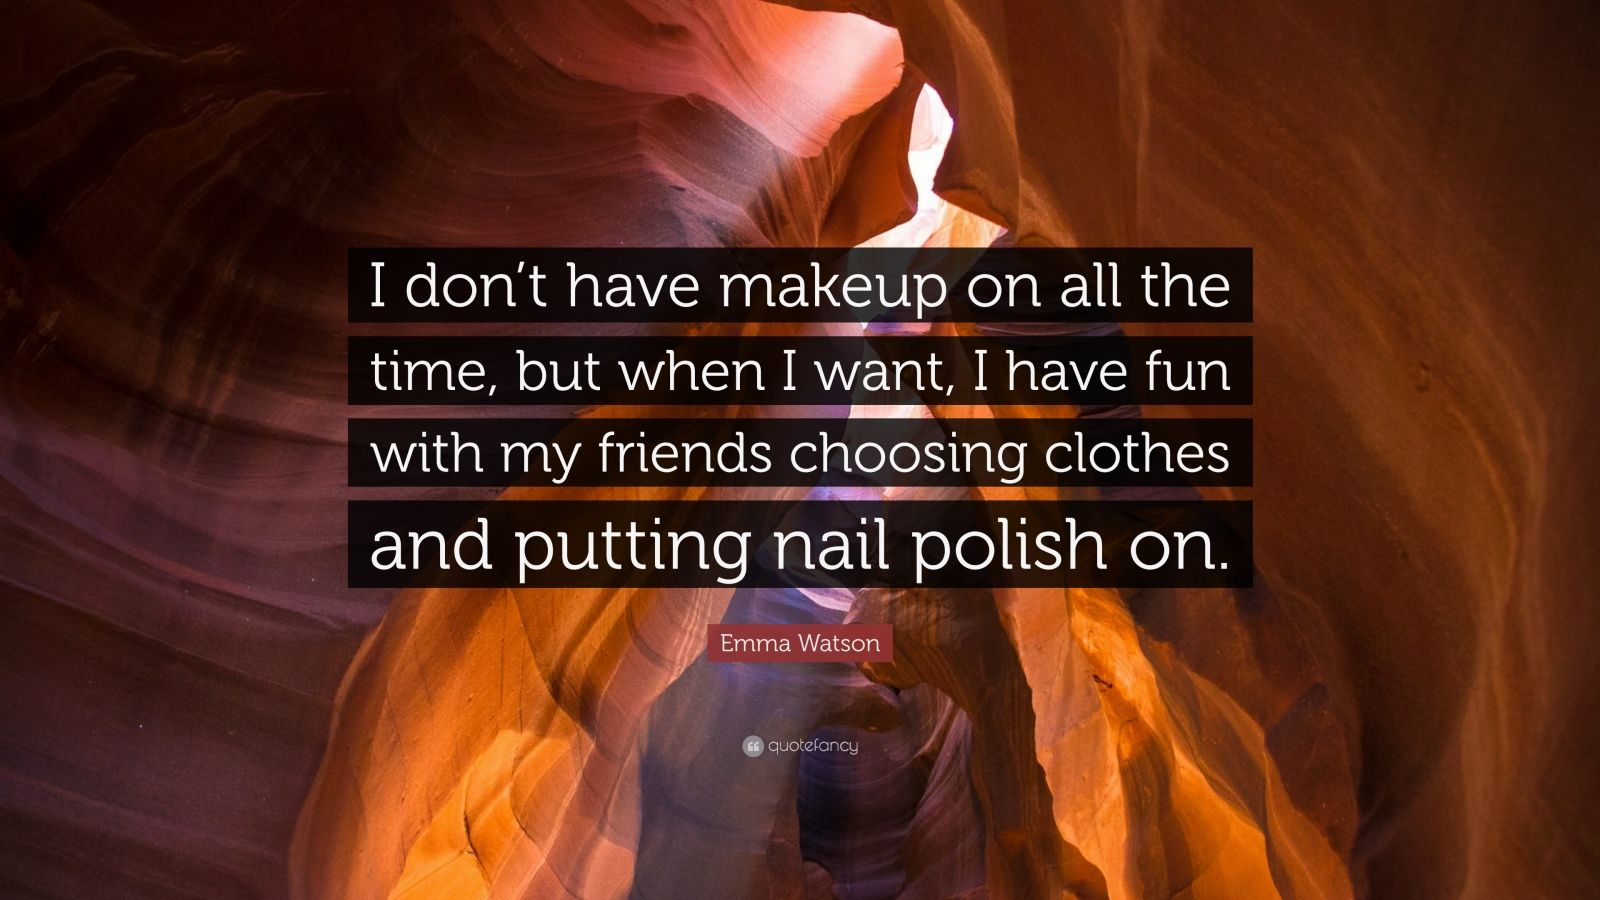 """Emma Watson Quote: """"I don't have makeup on all the time, but when I want, I have fun with my friends choosing clothes and putting nail polish on."""""""